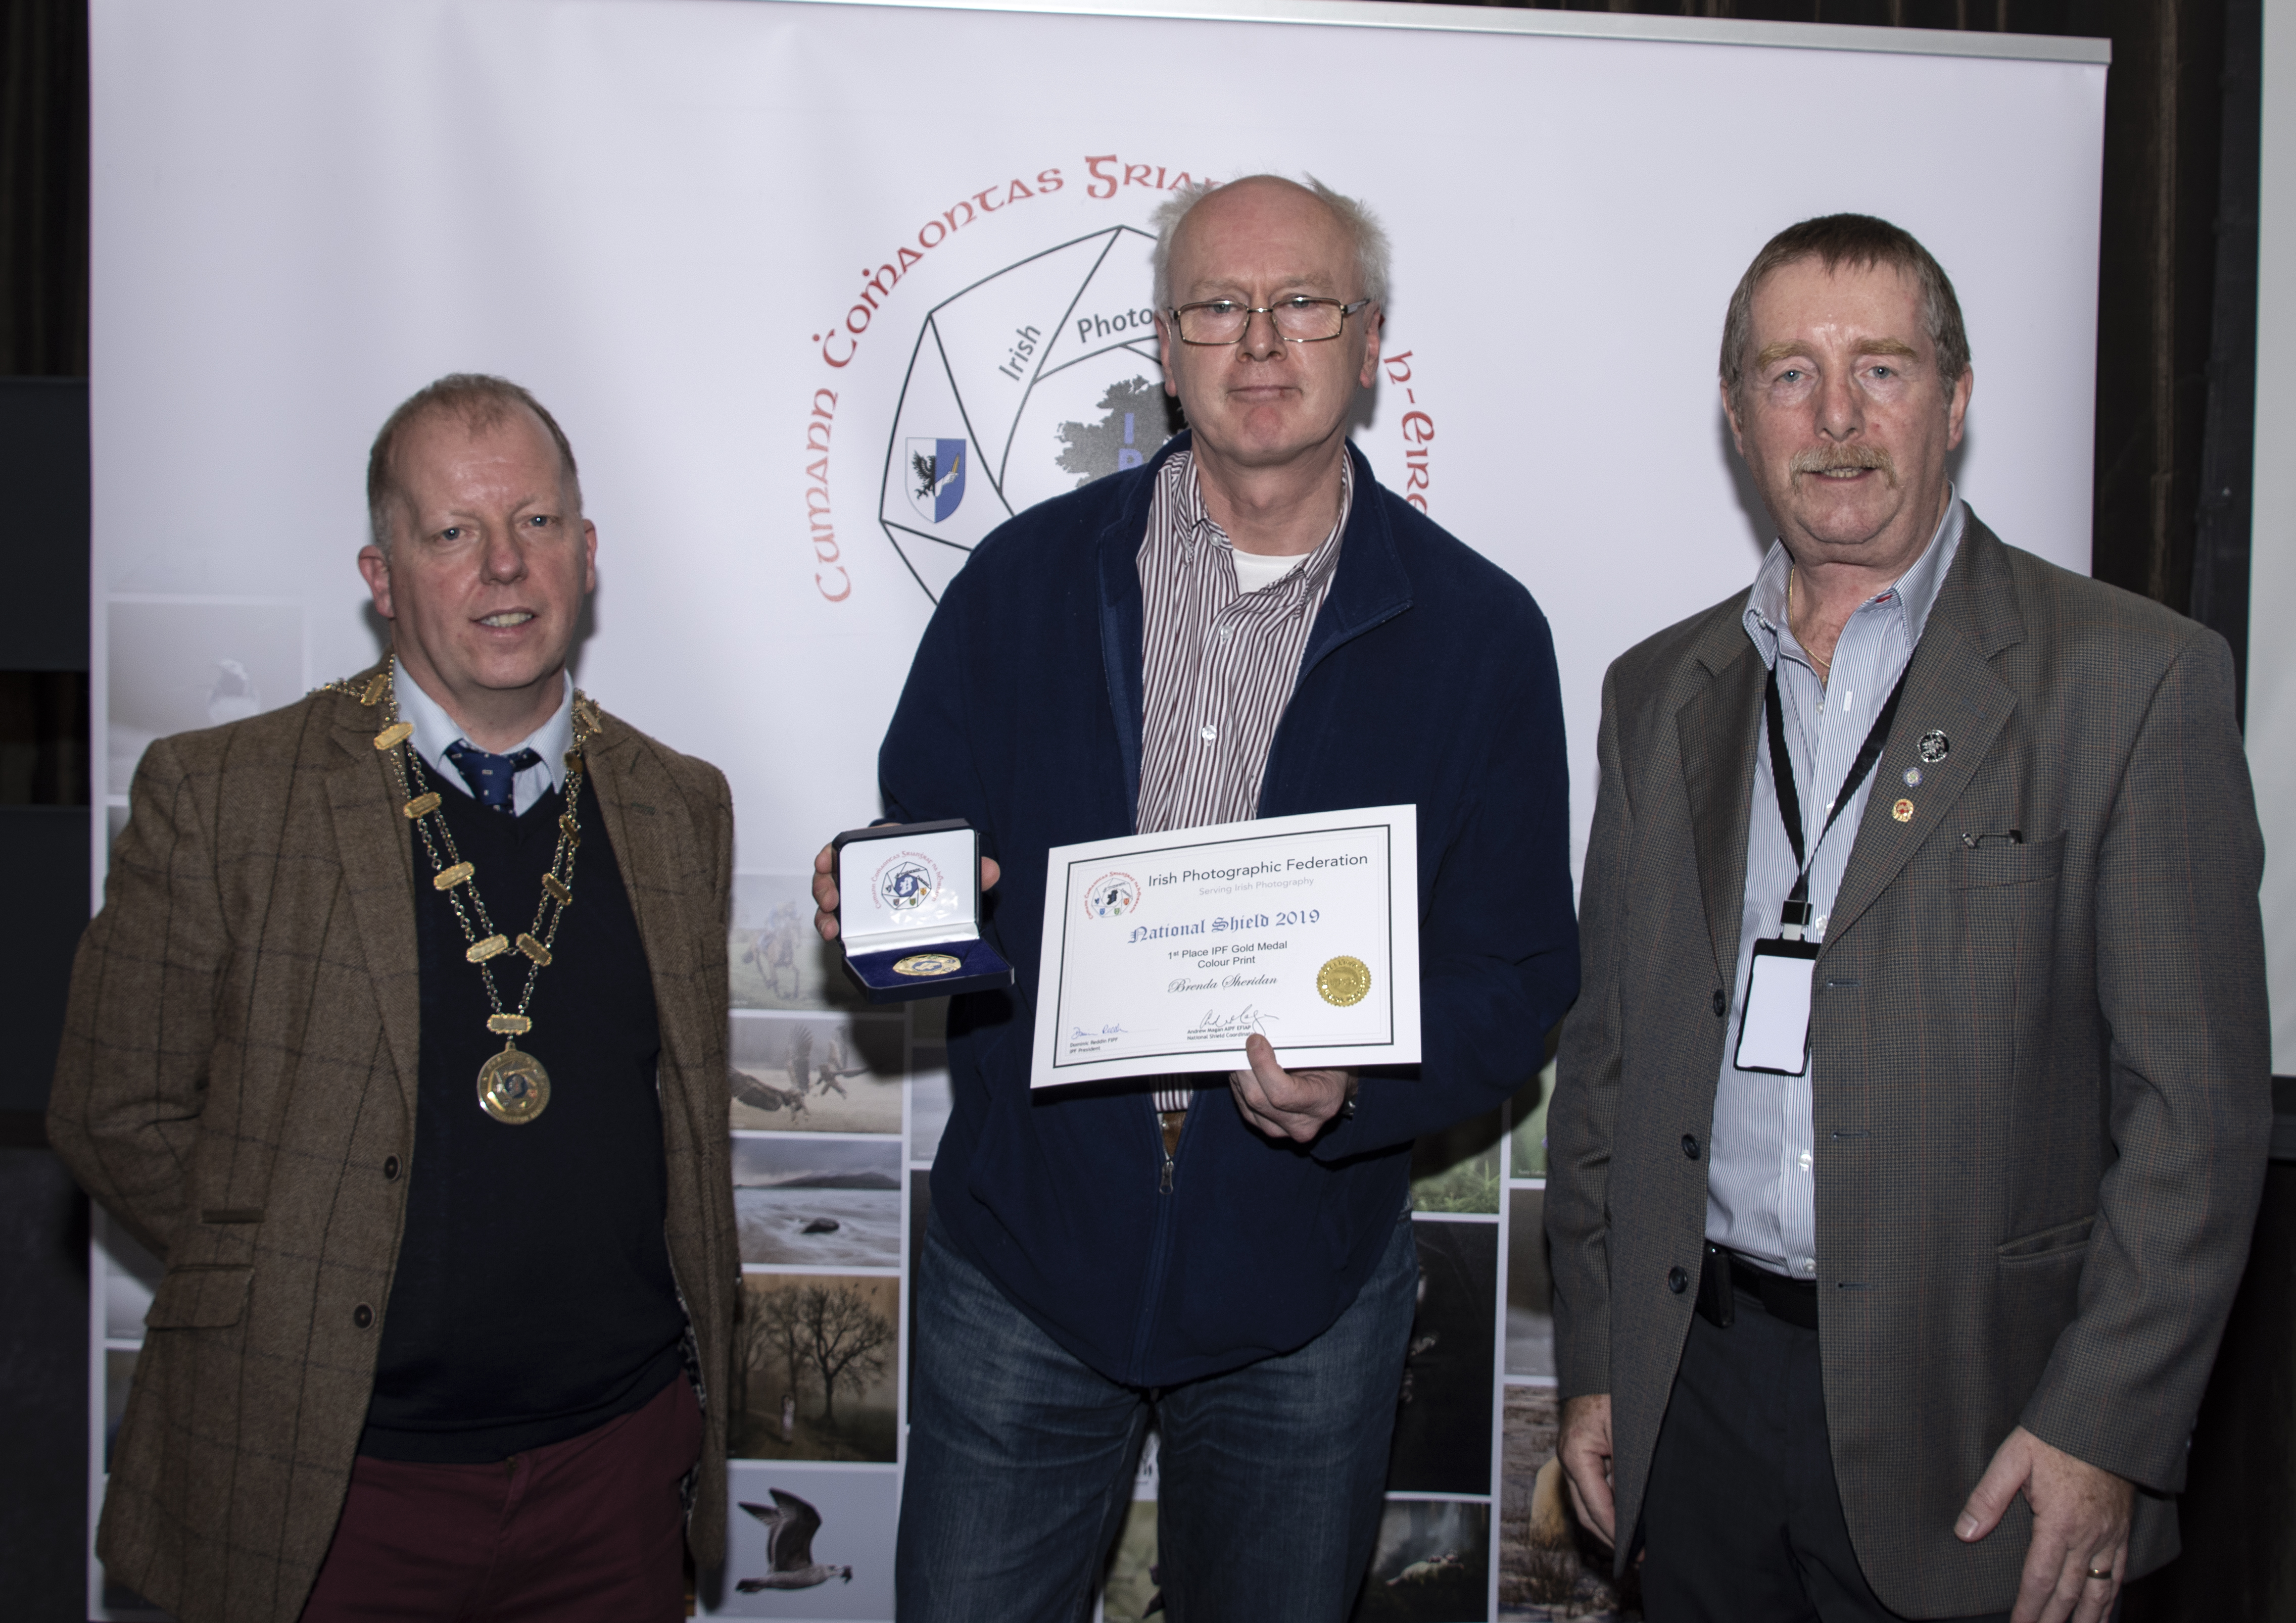 Colour, IPF Gold Medal Plus Certificate Brenda Sheridan – 2 Frogs – Tallaght Photographic Society